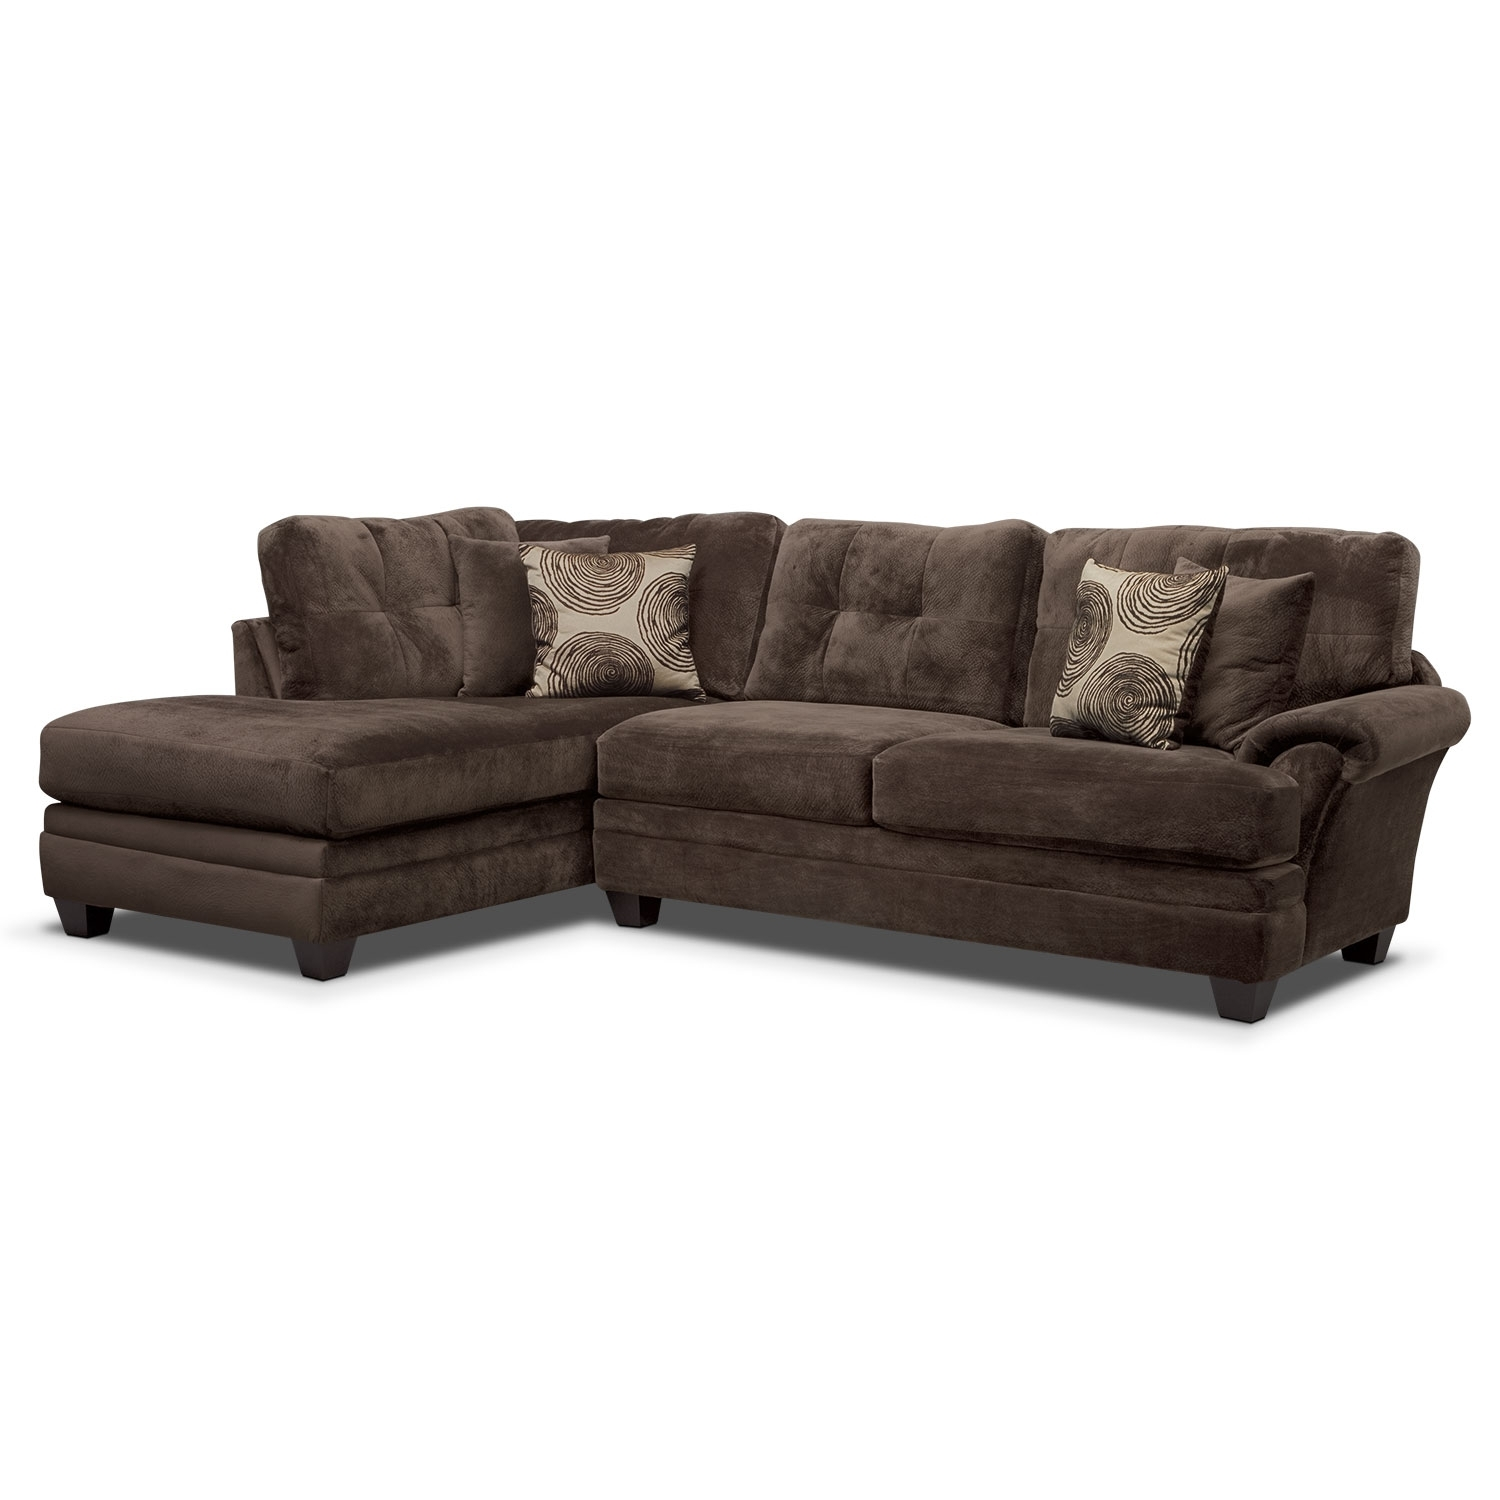 Cordelle 2 Piece Sectional With Left Facing Chaise – Chocolate Intended For Jackson 6 Piece Power Reclining Sectionals With Sleeper (View 18 of 25)